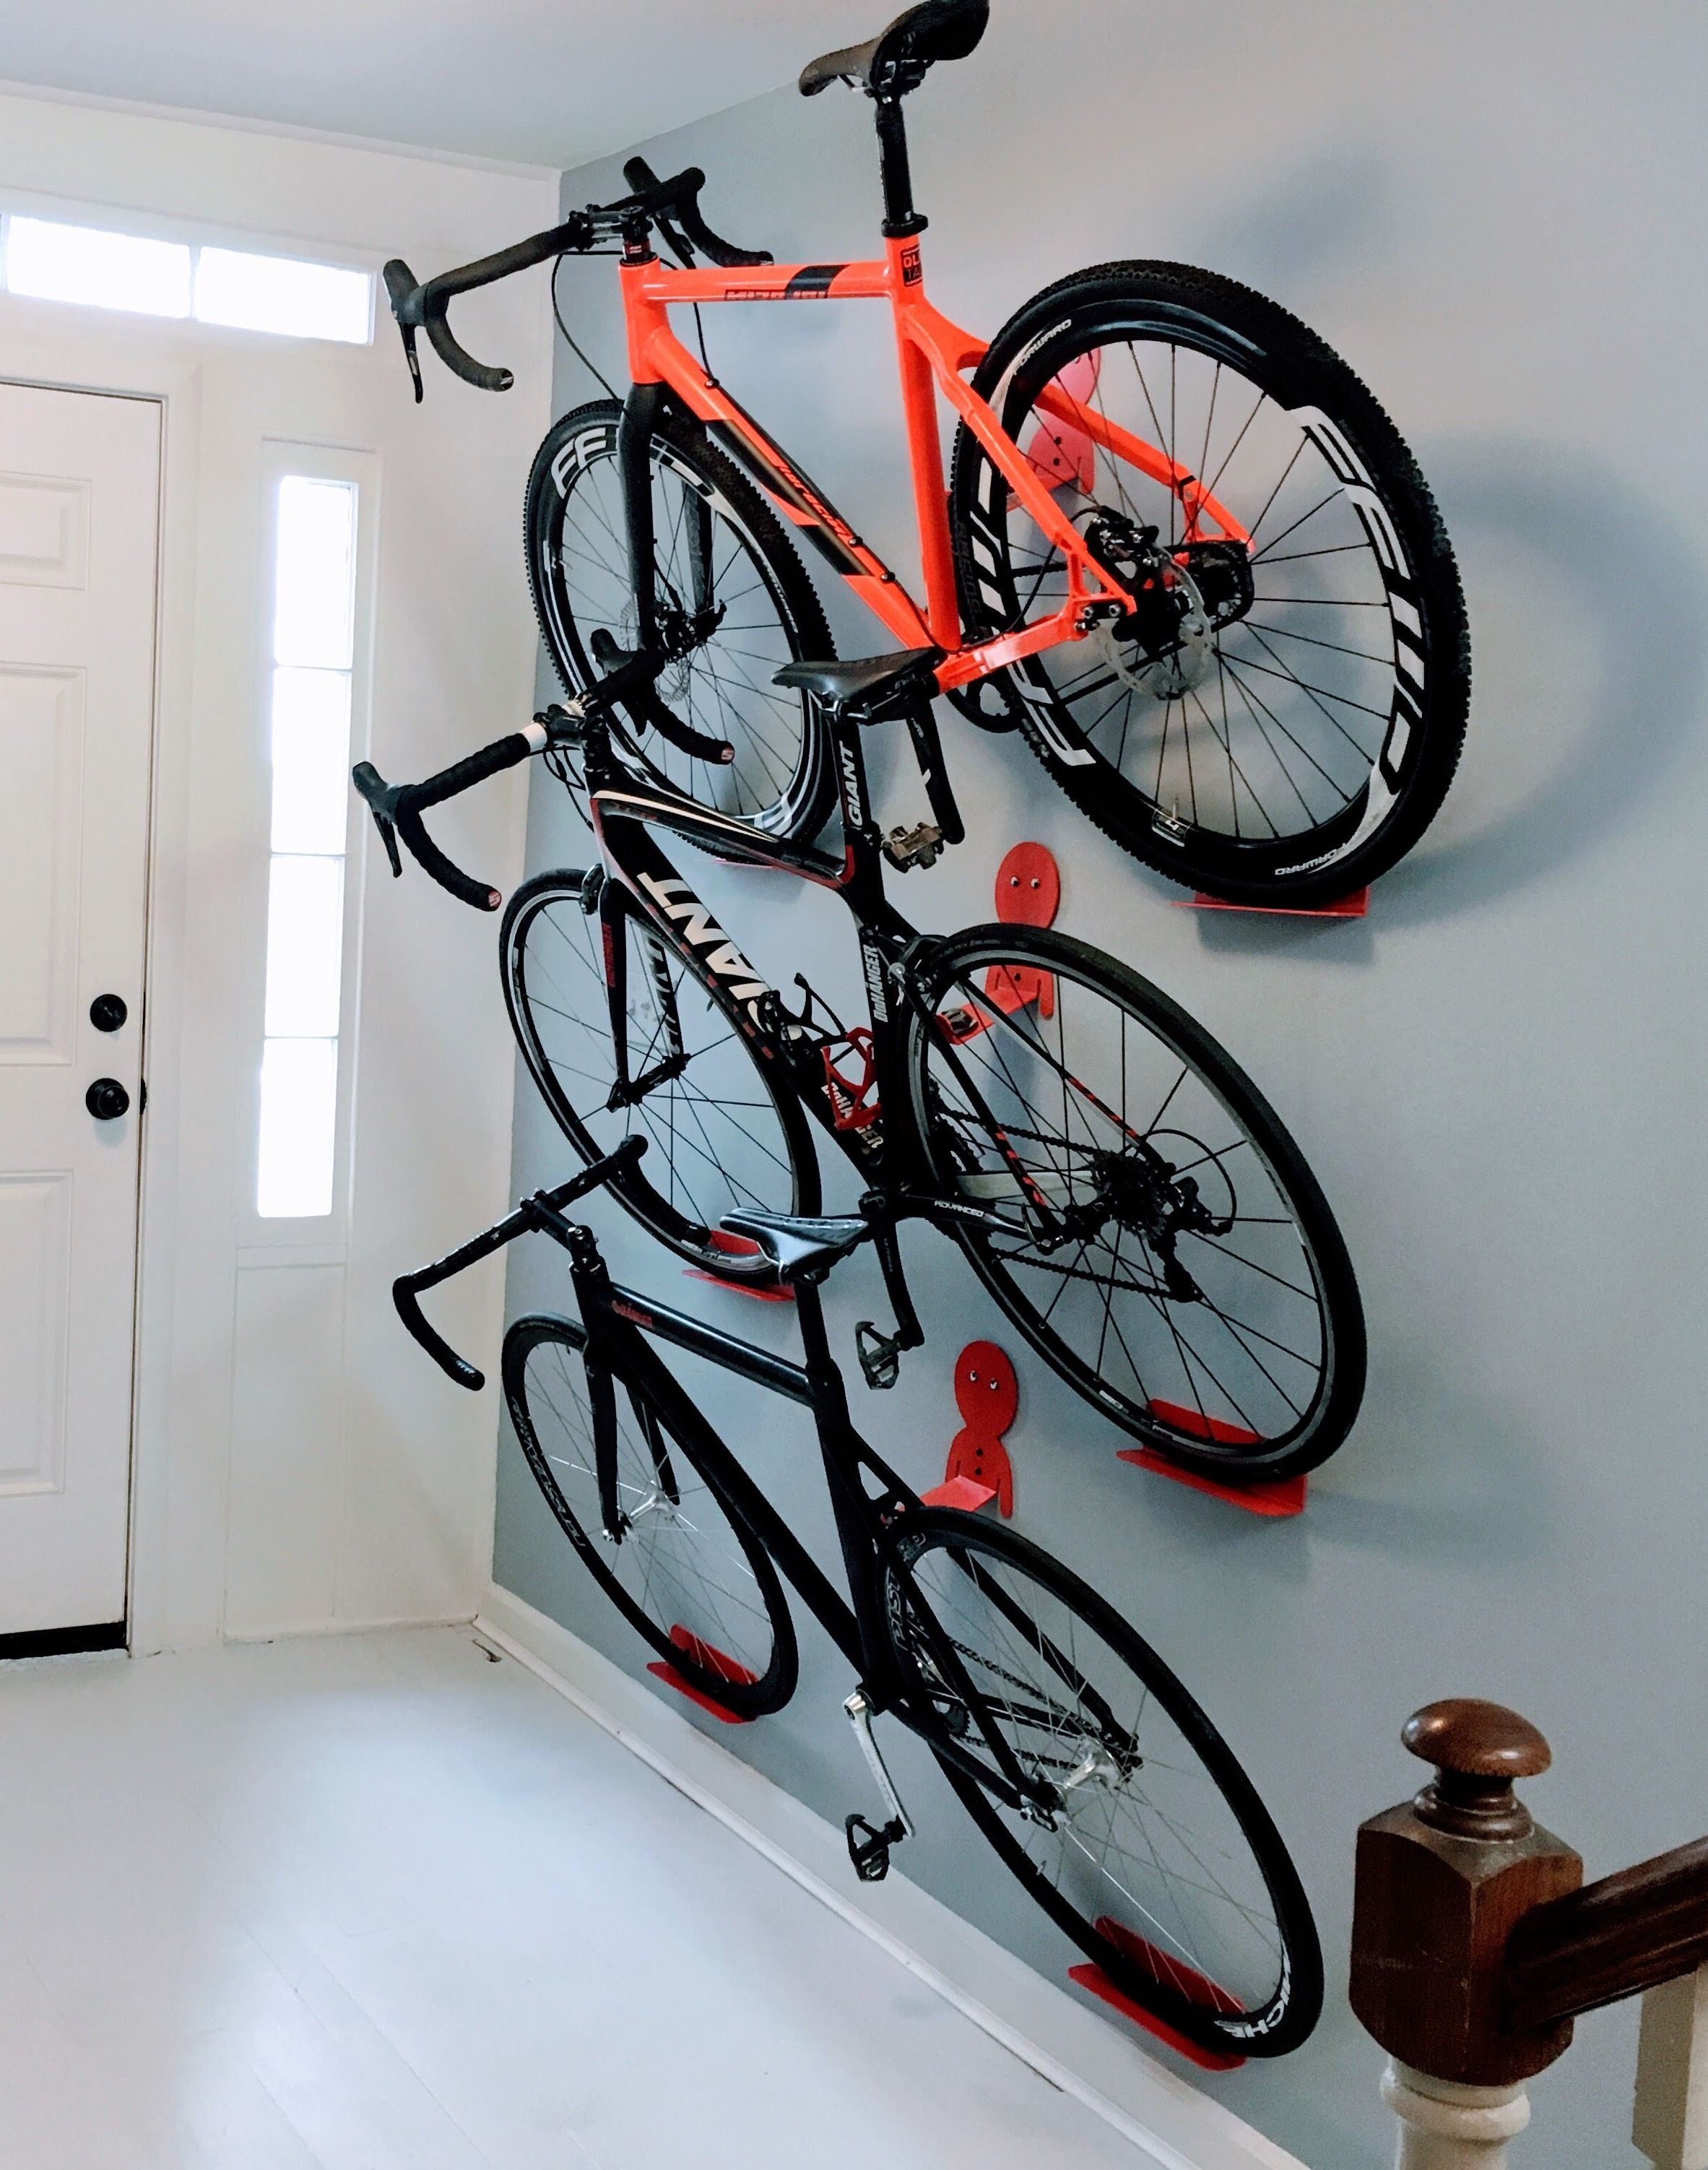 Tidy Garage Bike Rack Installation Multiple Bikes Hanging Rack System Dahanger Dan Pedal Hook